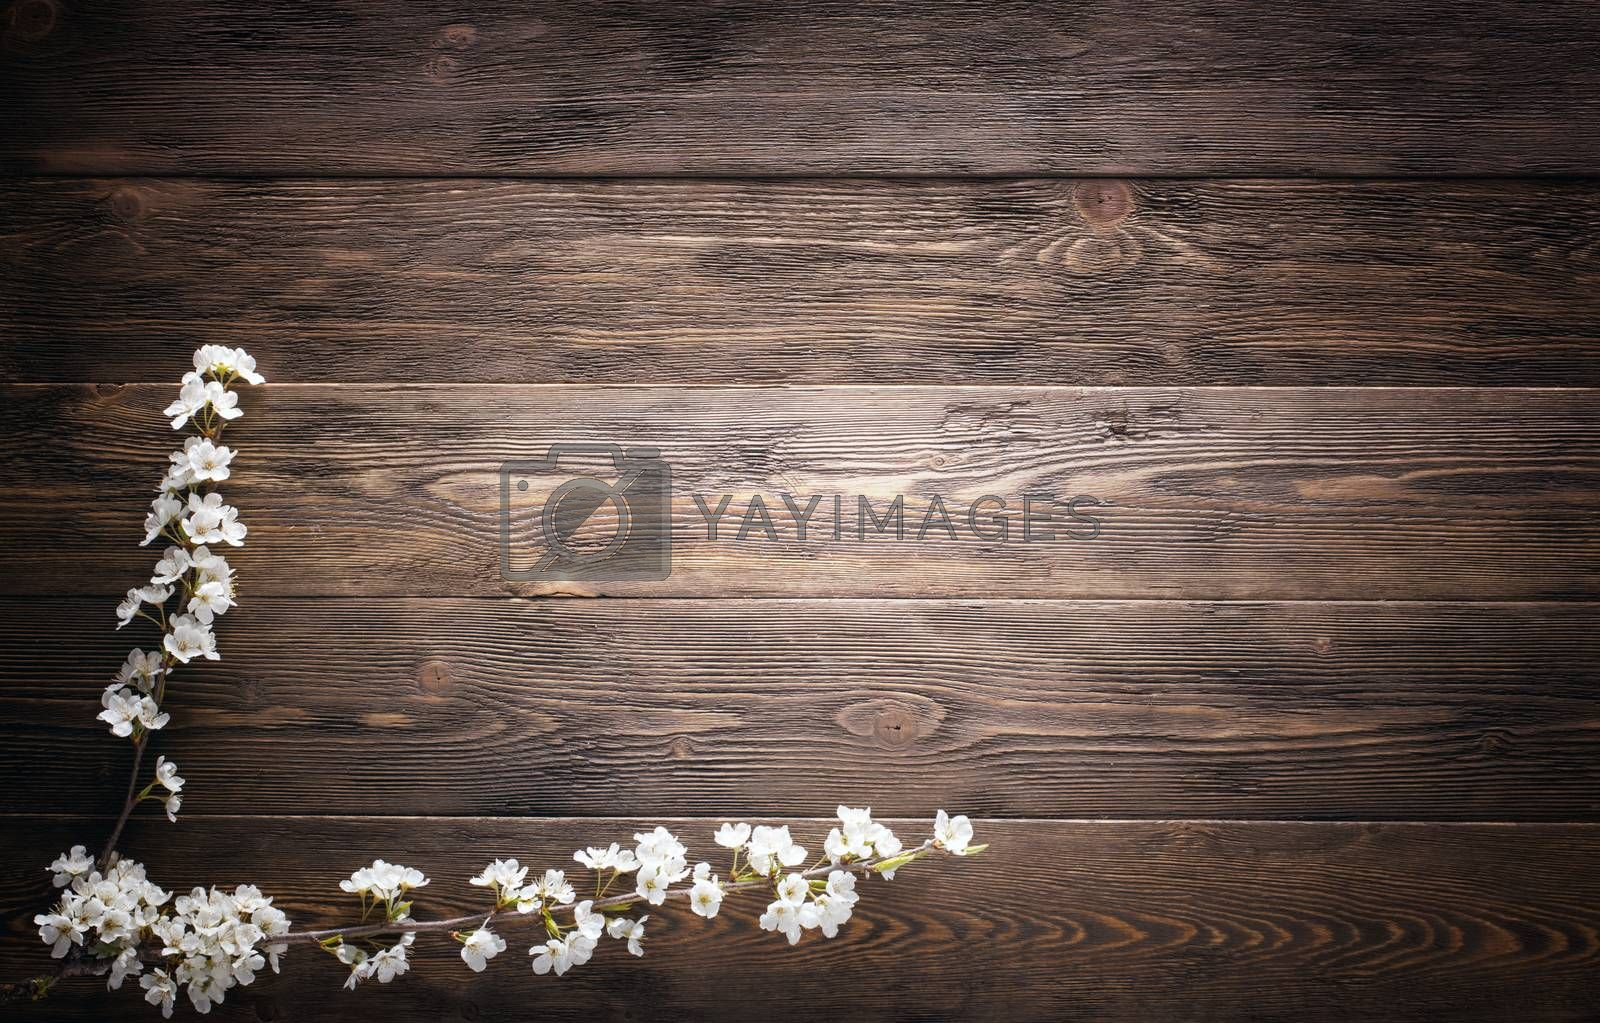 Royalty free image of Flowers on wood texture background by primopiano